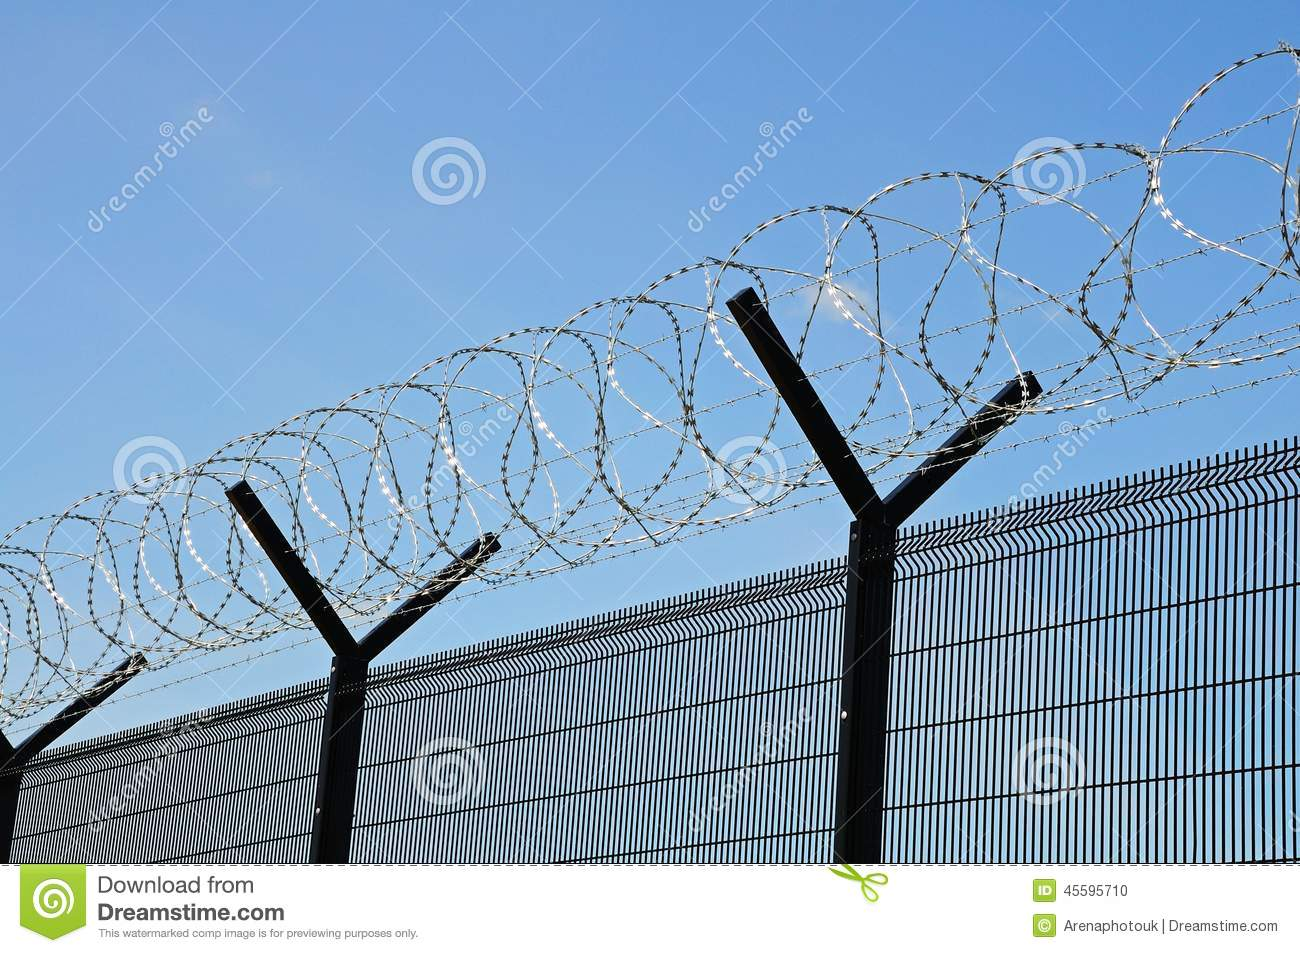 Coiled Barbed Wire Security Fence. Stock Photo - Image of perimeter ...